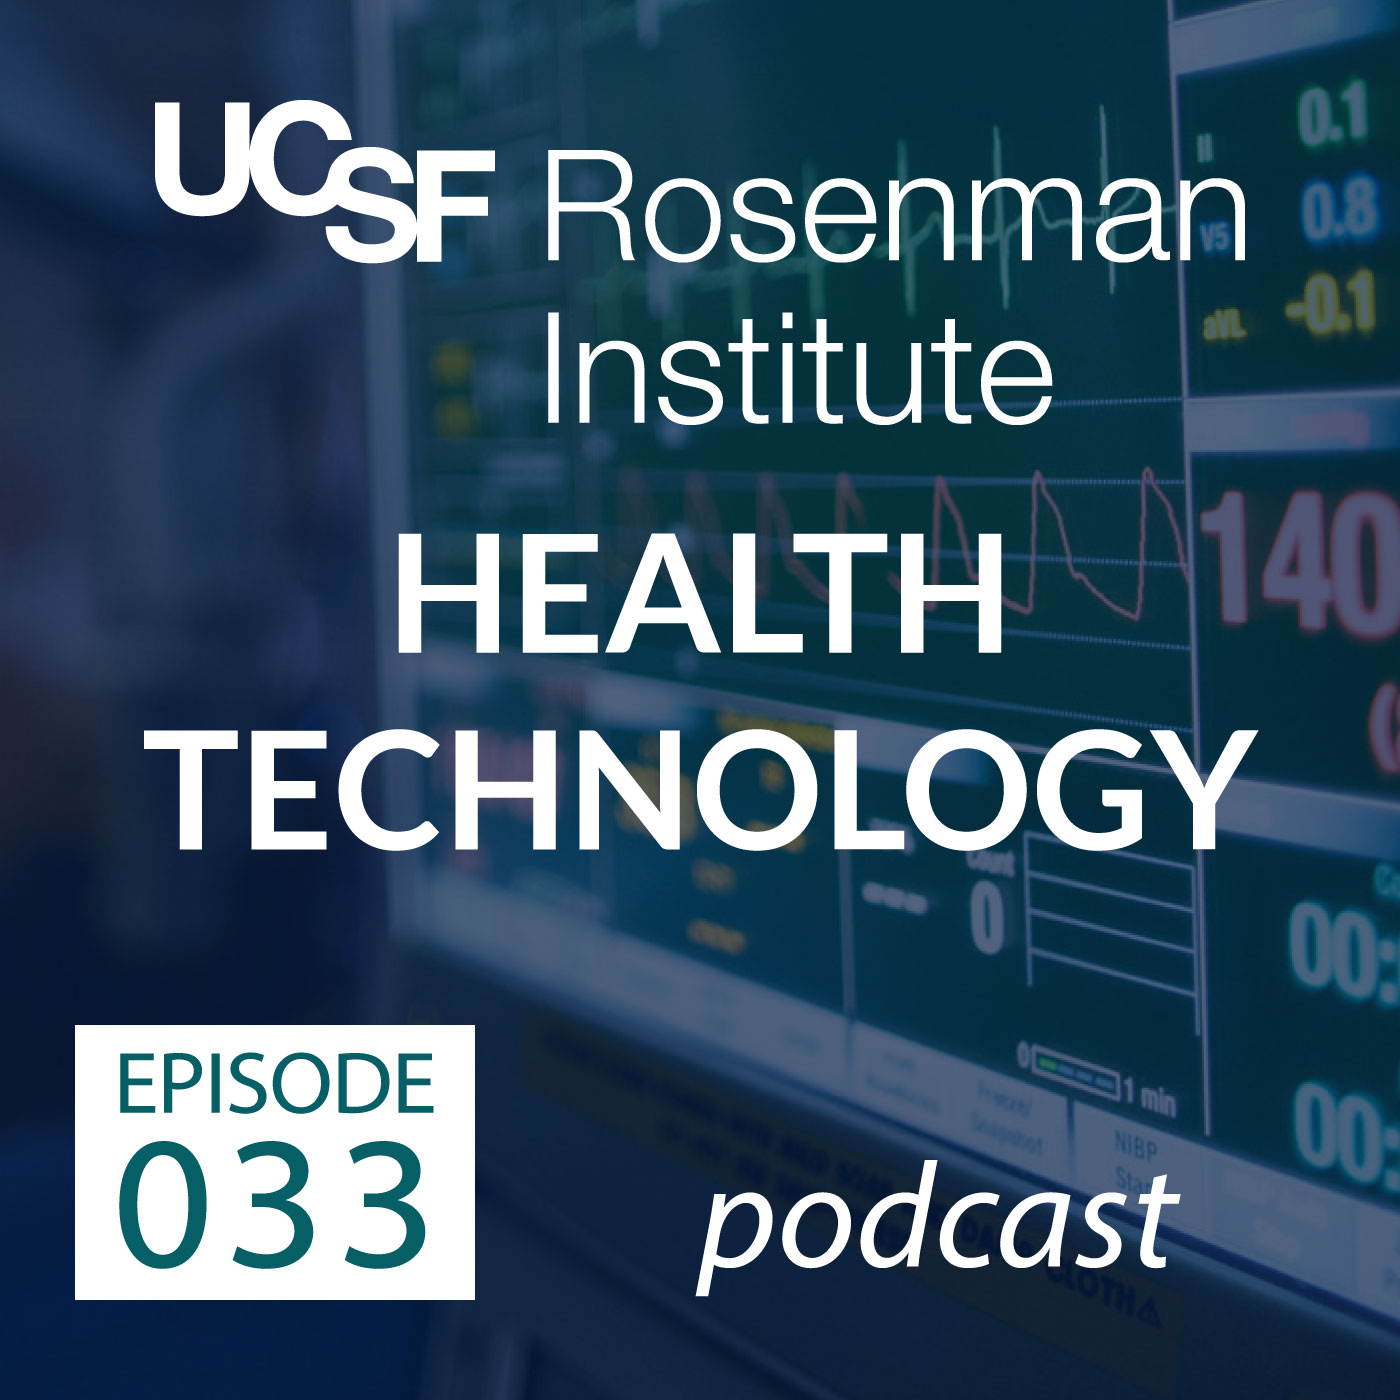 Health Technology podcast — UCSF Rosenman Institute